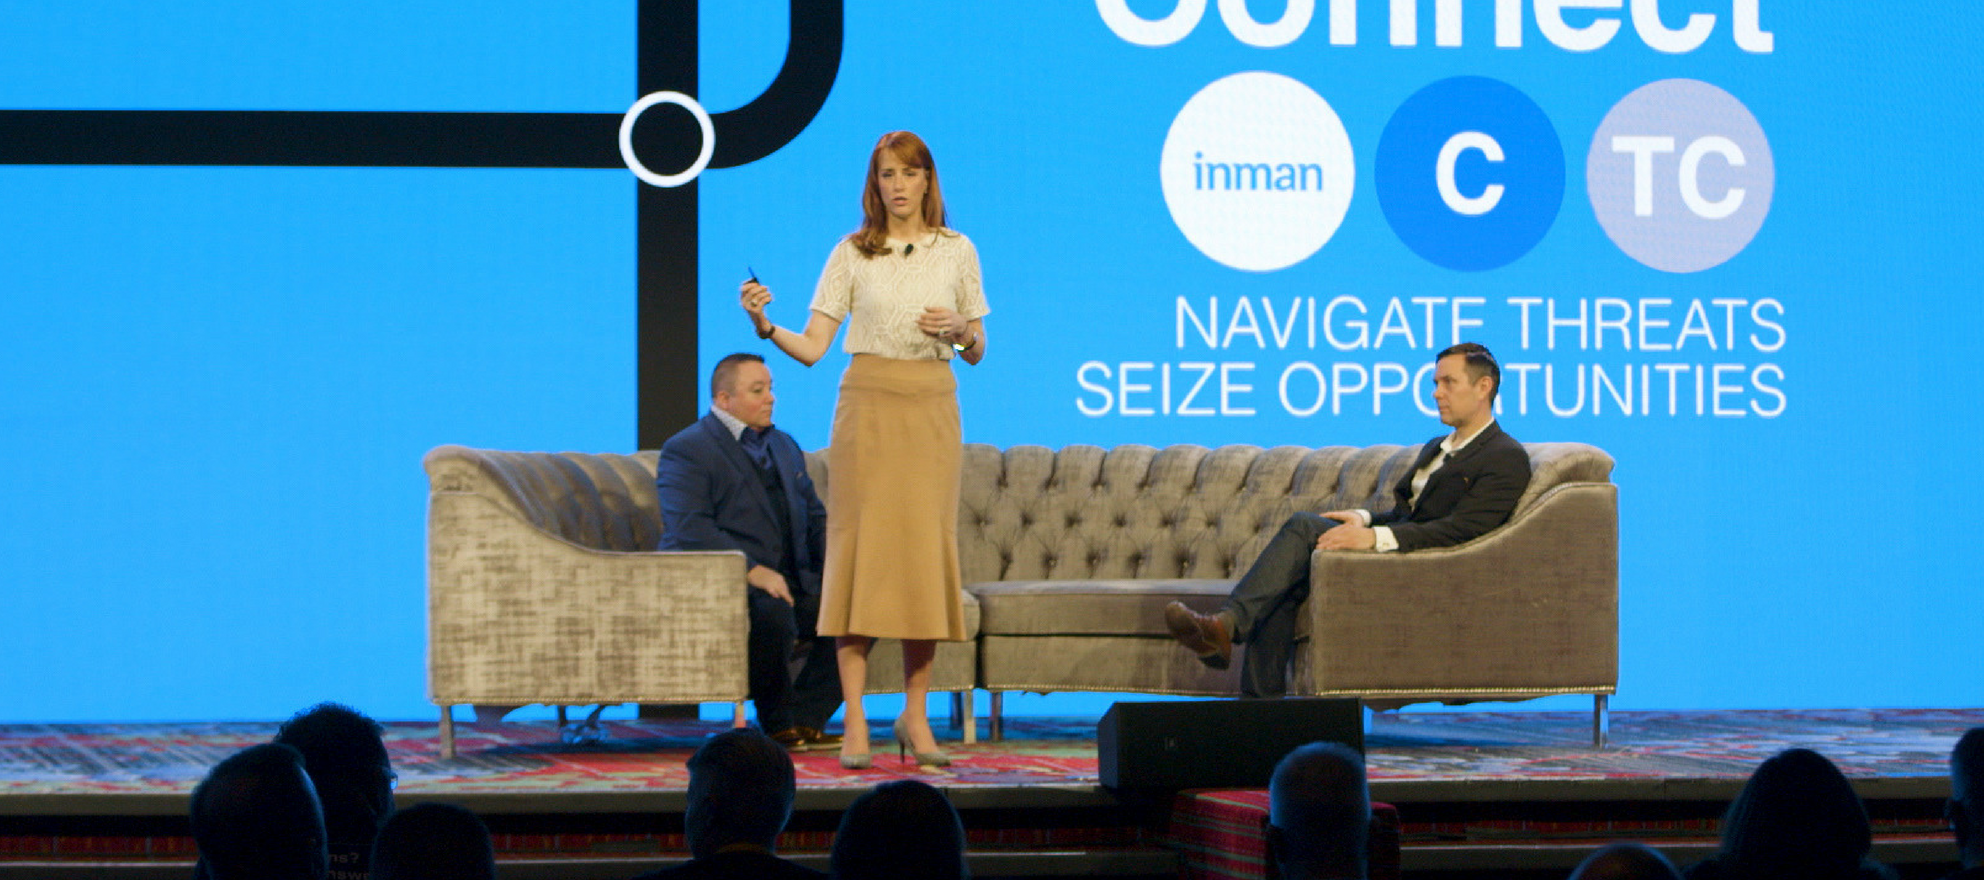 inman connect new york 2018 tech connect on-demand consumer